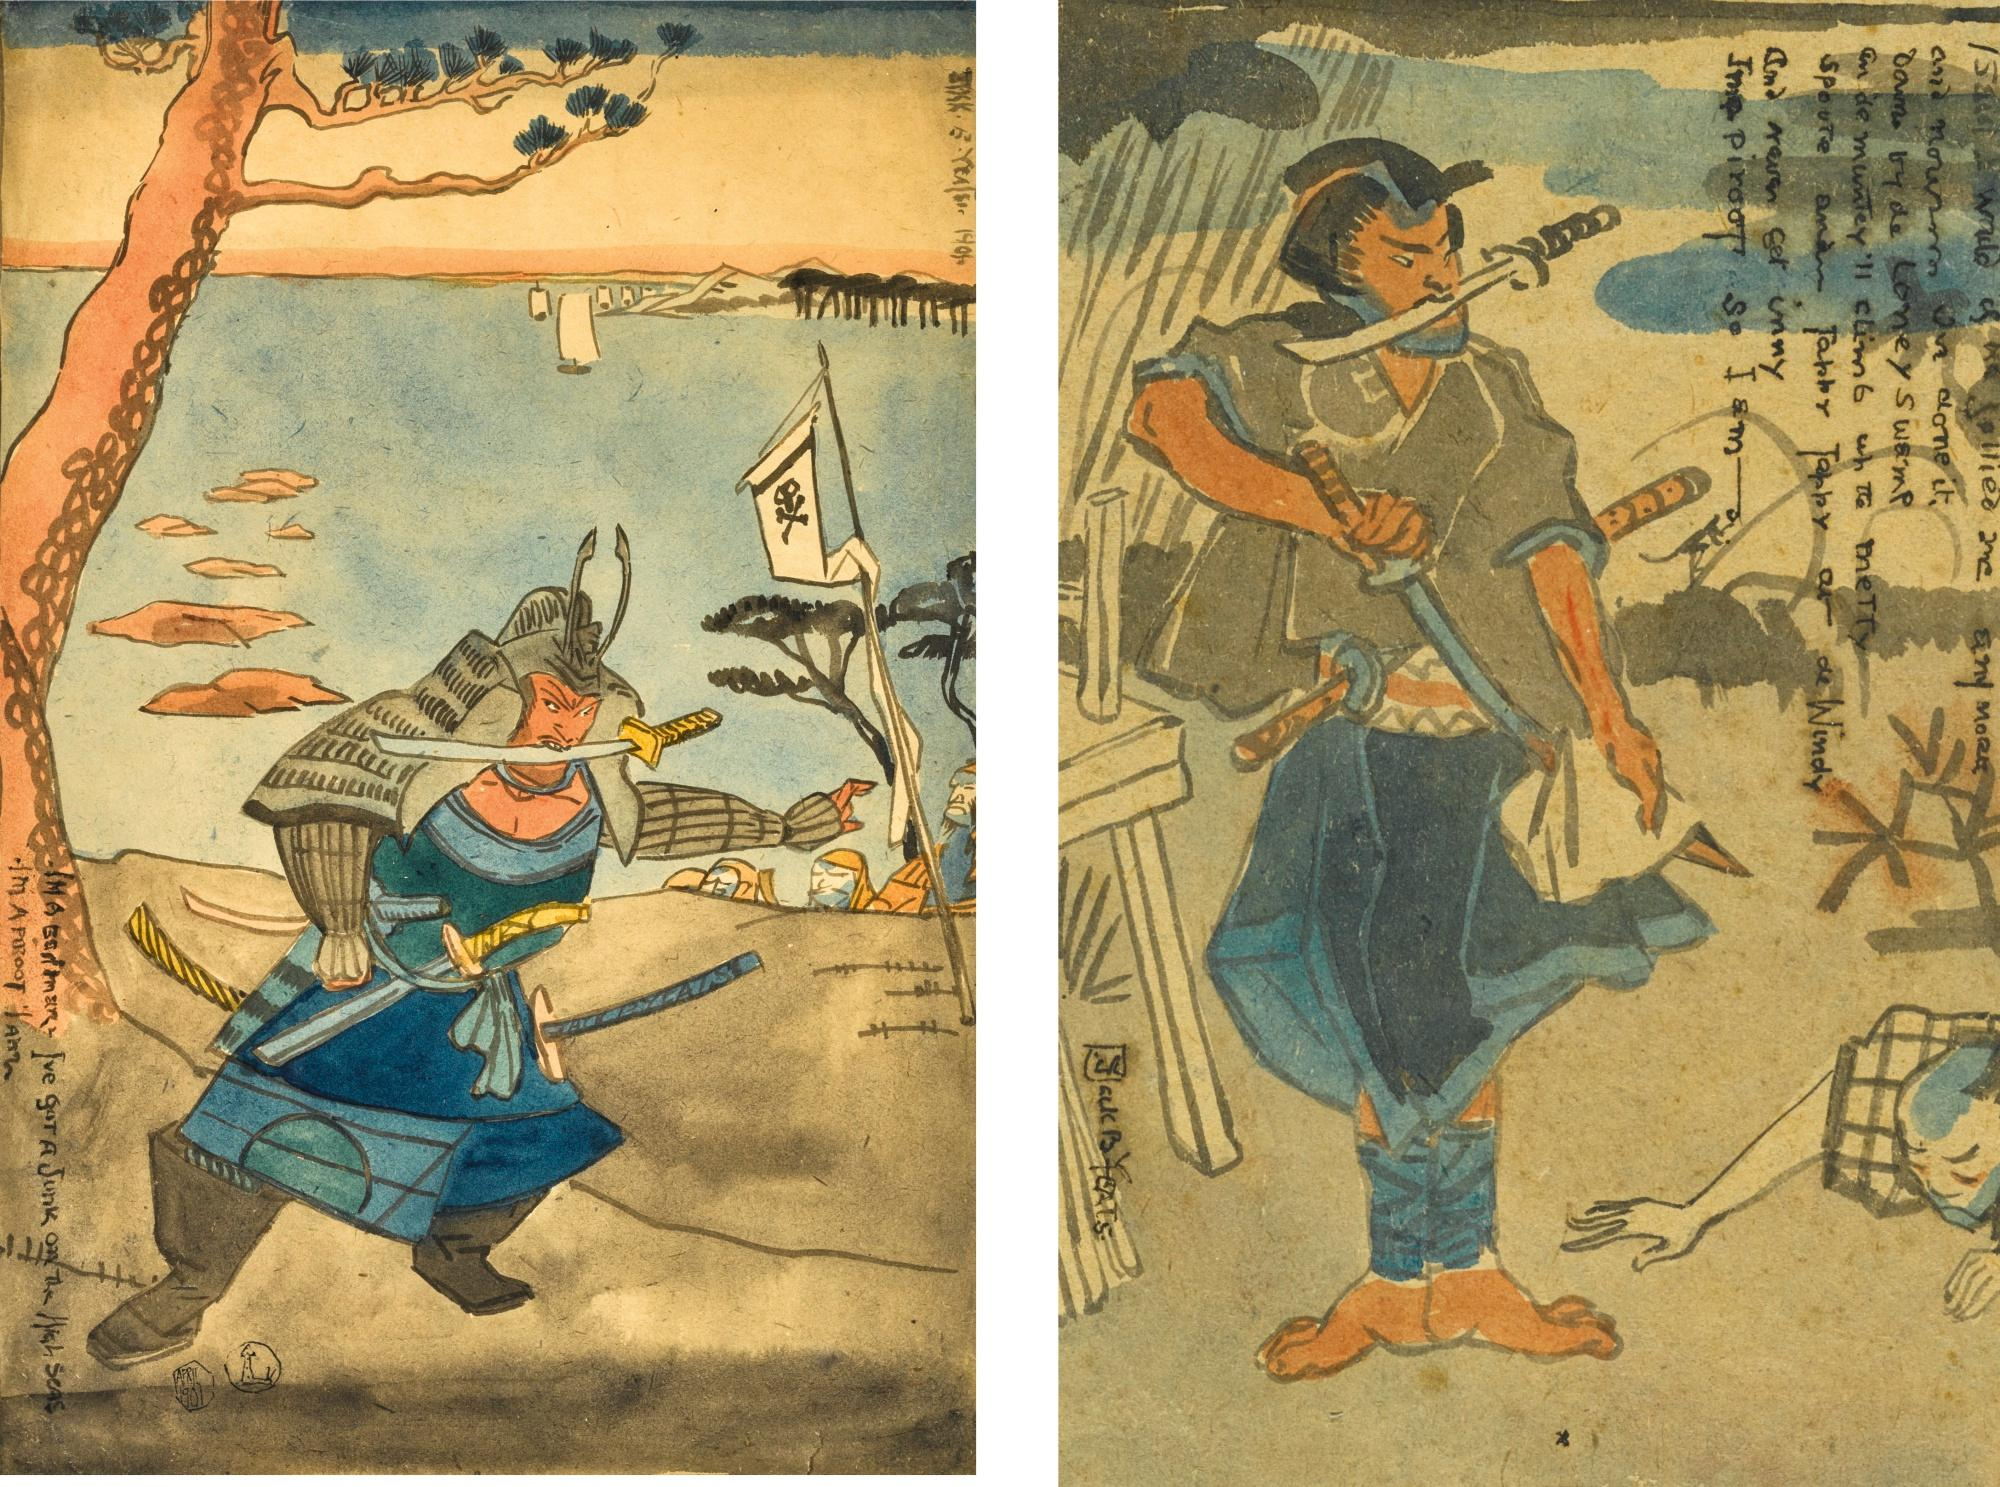 Untitled: Japanese Pirate; Untitled: Japanese Pirate by Jack Butler Yeats